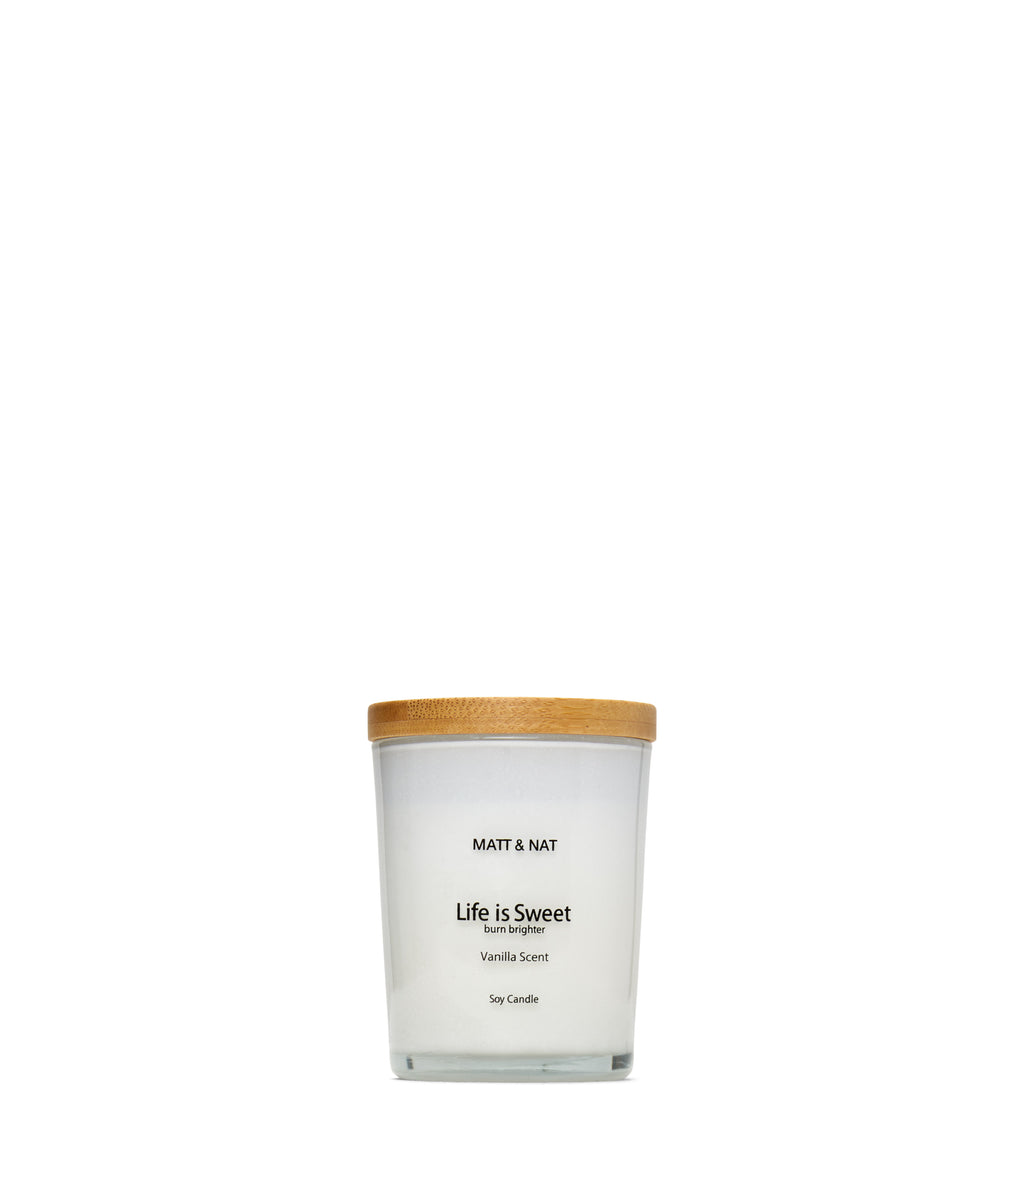 Matt & Nat LIFE Candle - White